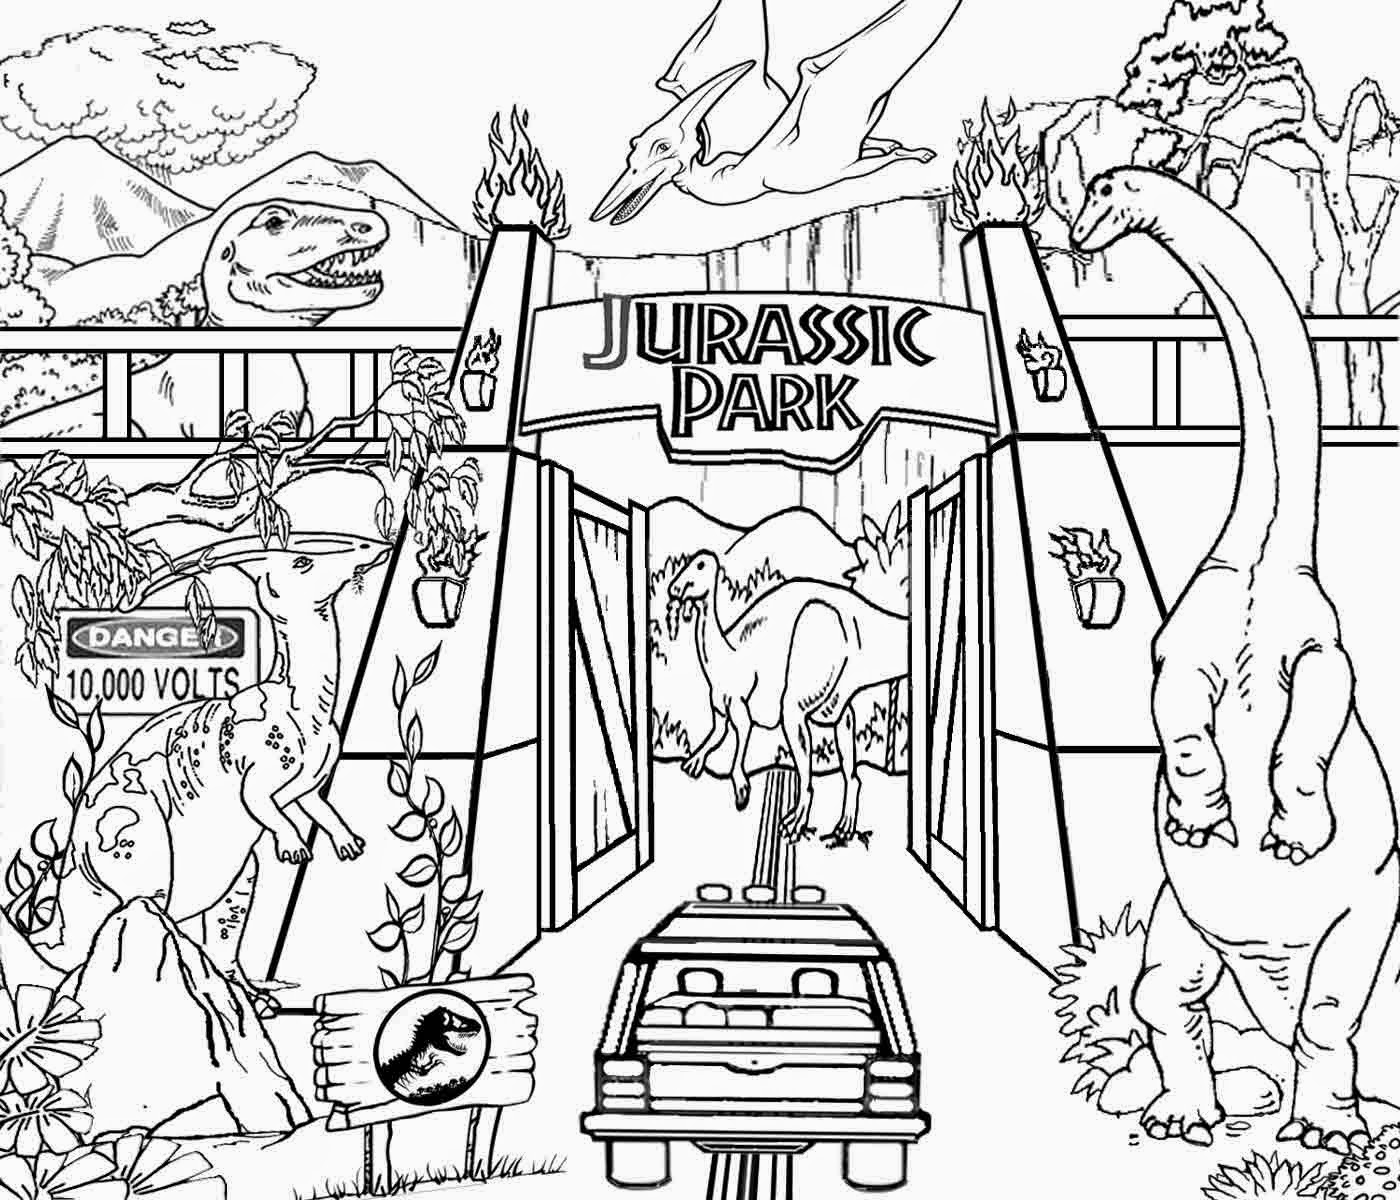 Jurassic Park Coloring Pages - Free Coloring Pages Printable to Color Kids